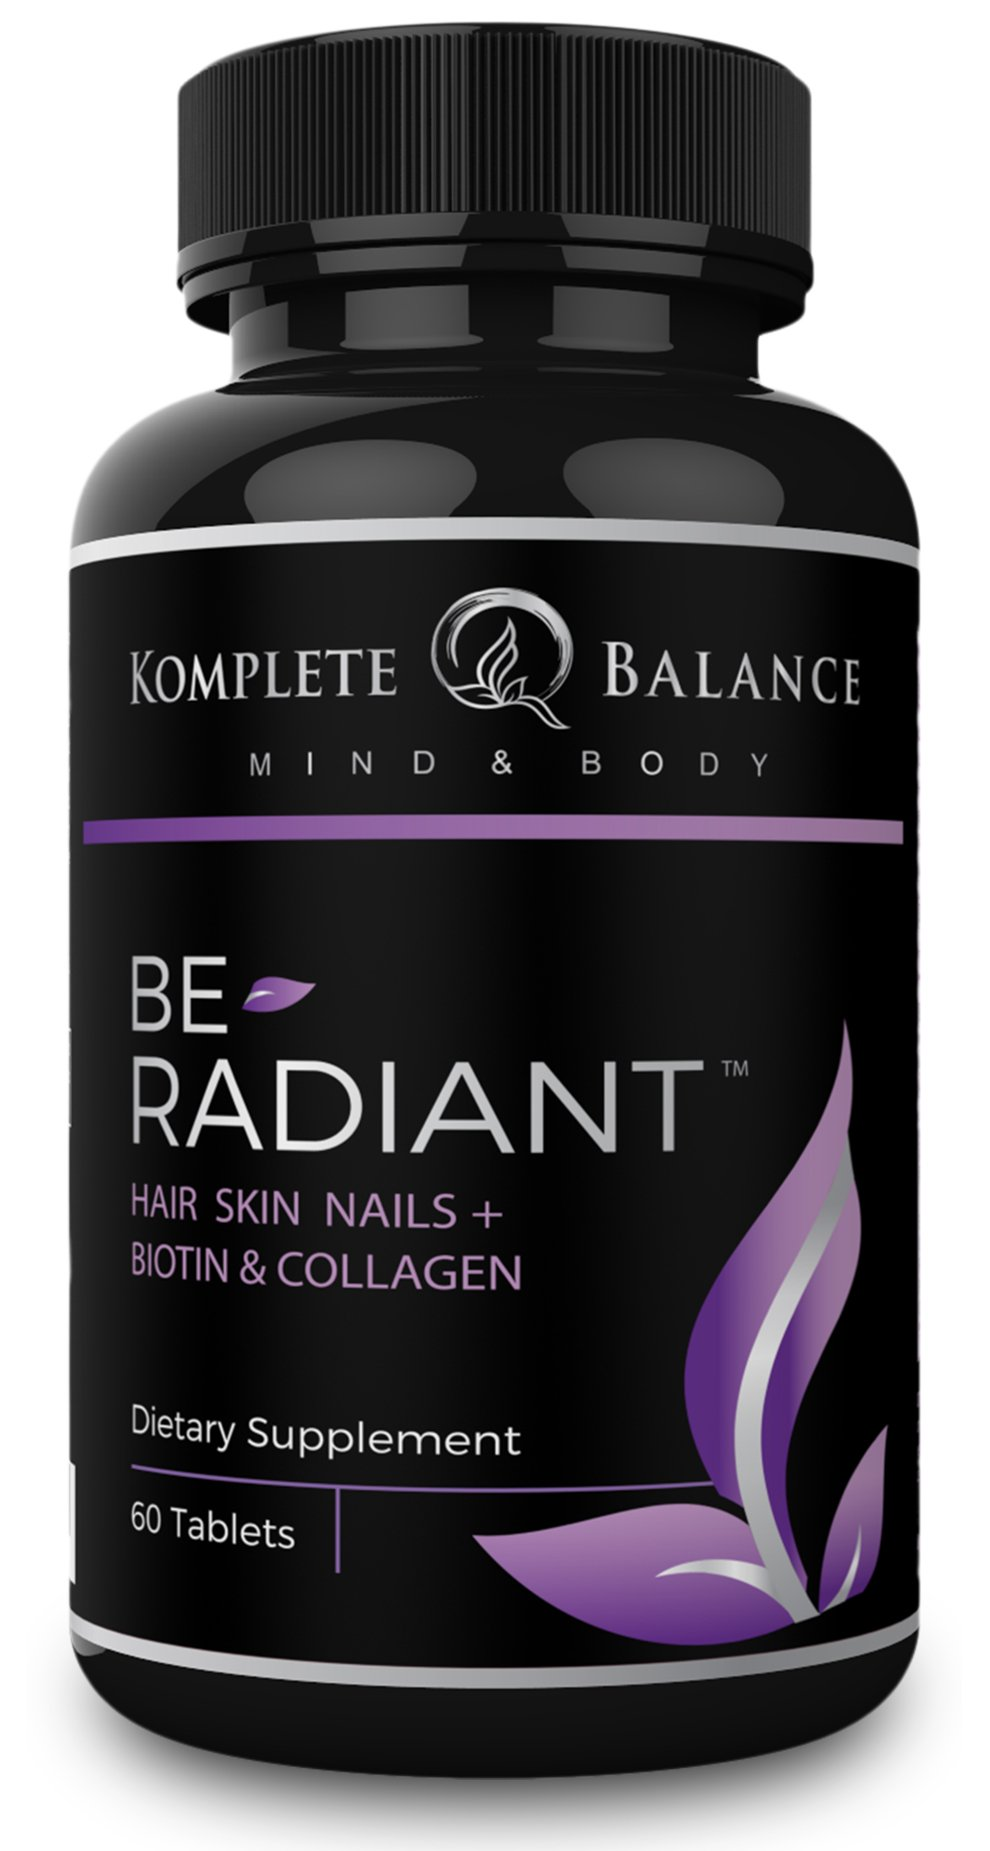 BeRadiant - Hair Skin & Nails Vitamins - Biotin 5000 mcg For Hair Growth & Stronger Nails - Collagen, Antioxidants & Powerful Herbs For Healthy Skin - DHT Blocker Helps Stop Hair Loss - All Hair Types